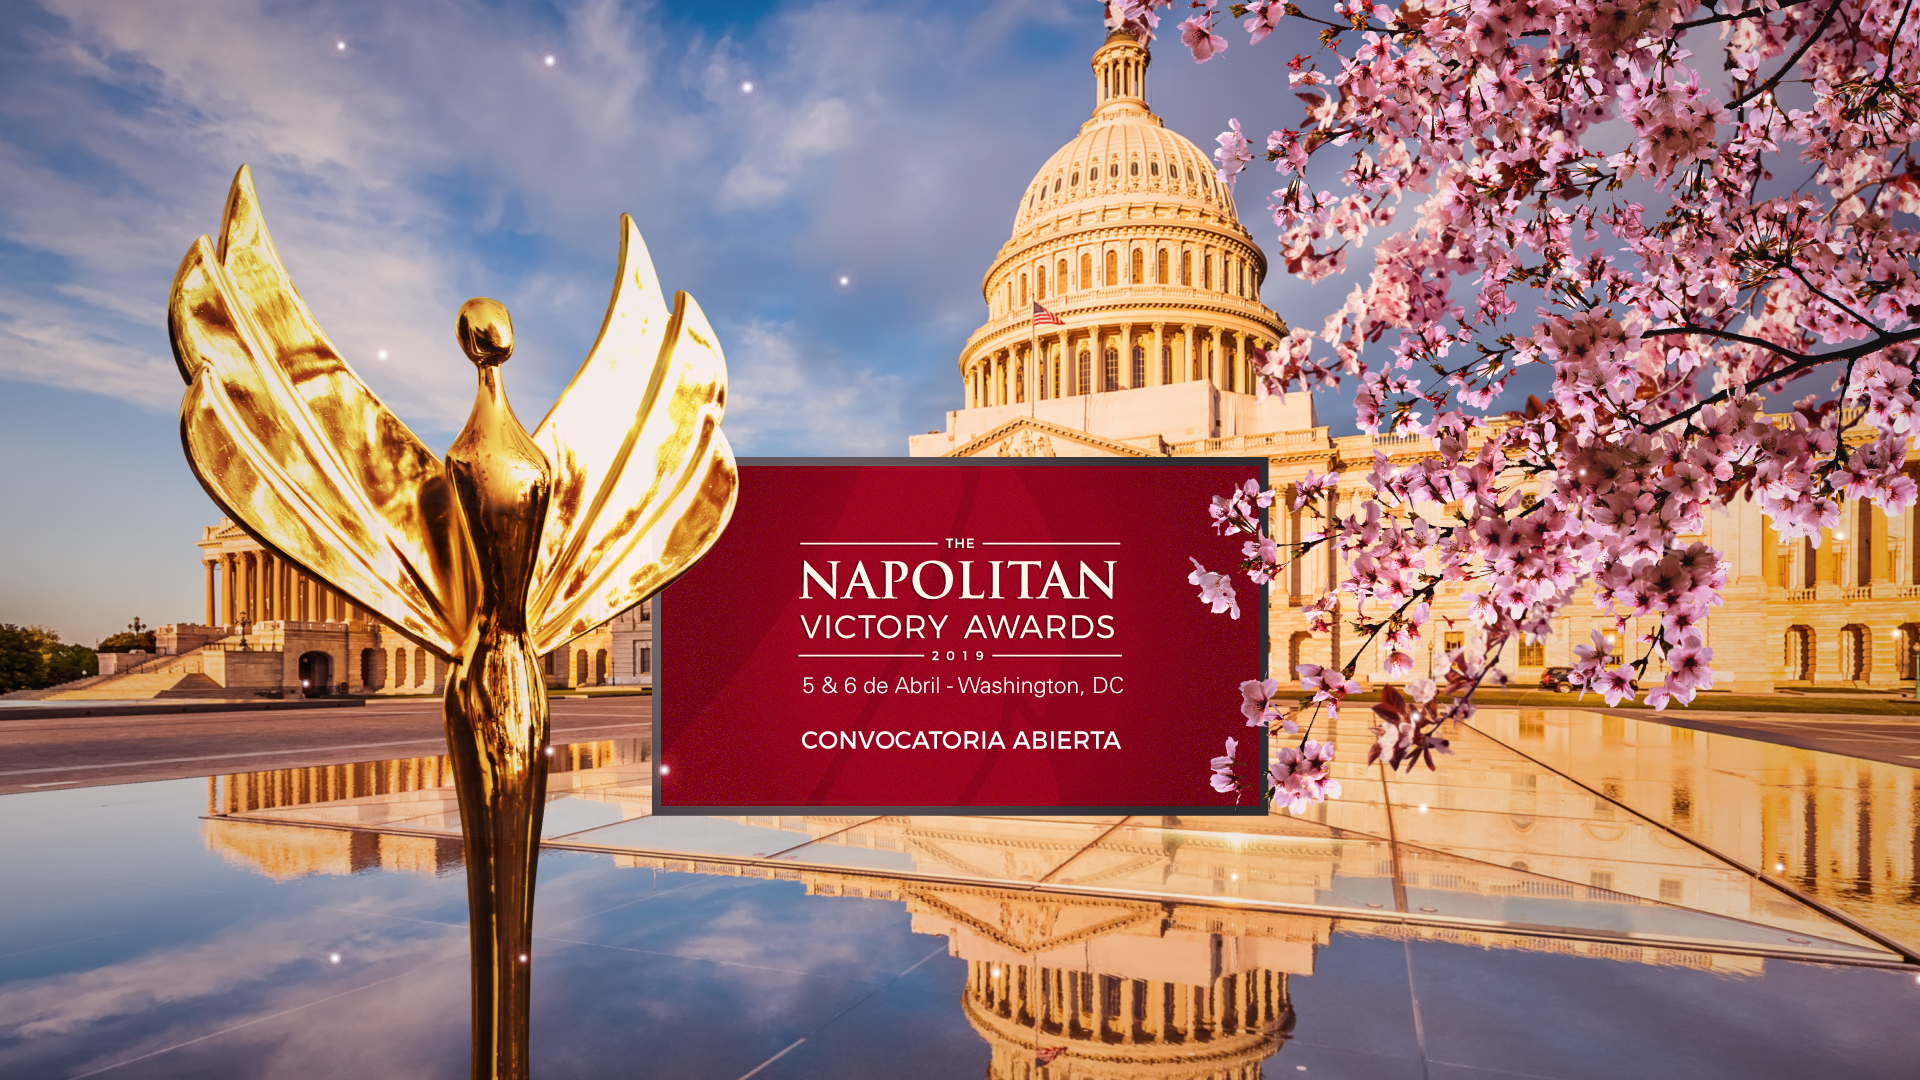 The Washington Academy of Political Arts and Sciences - Napolitan Victory Awards